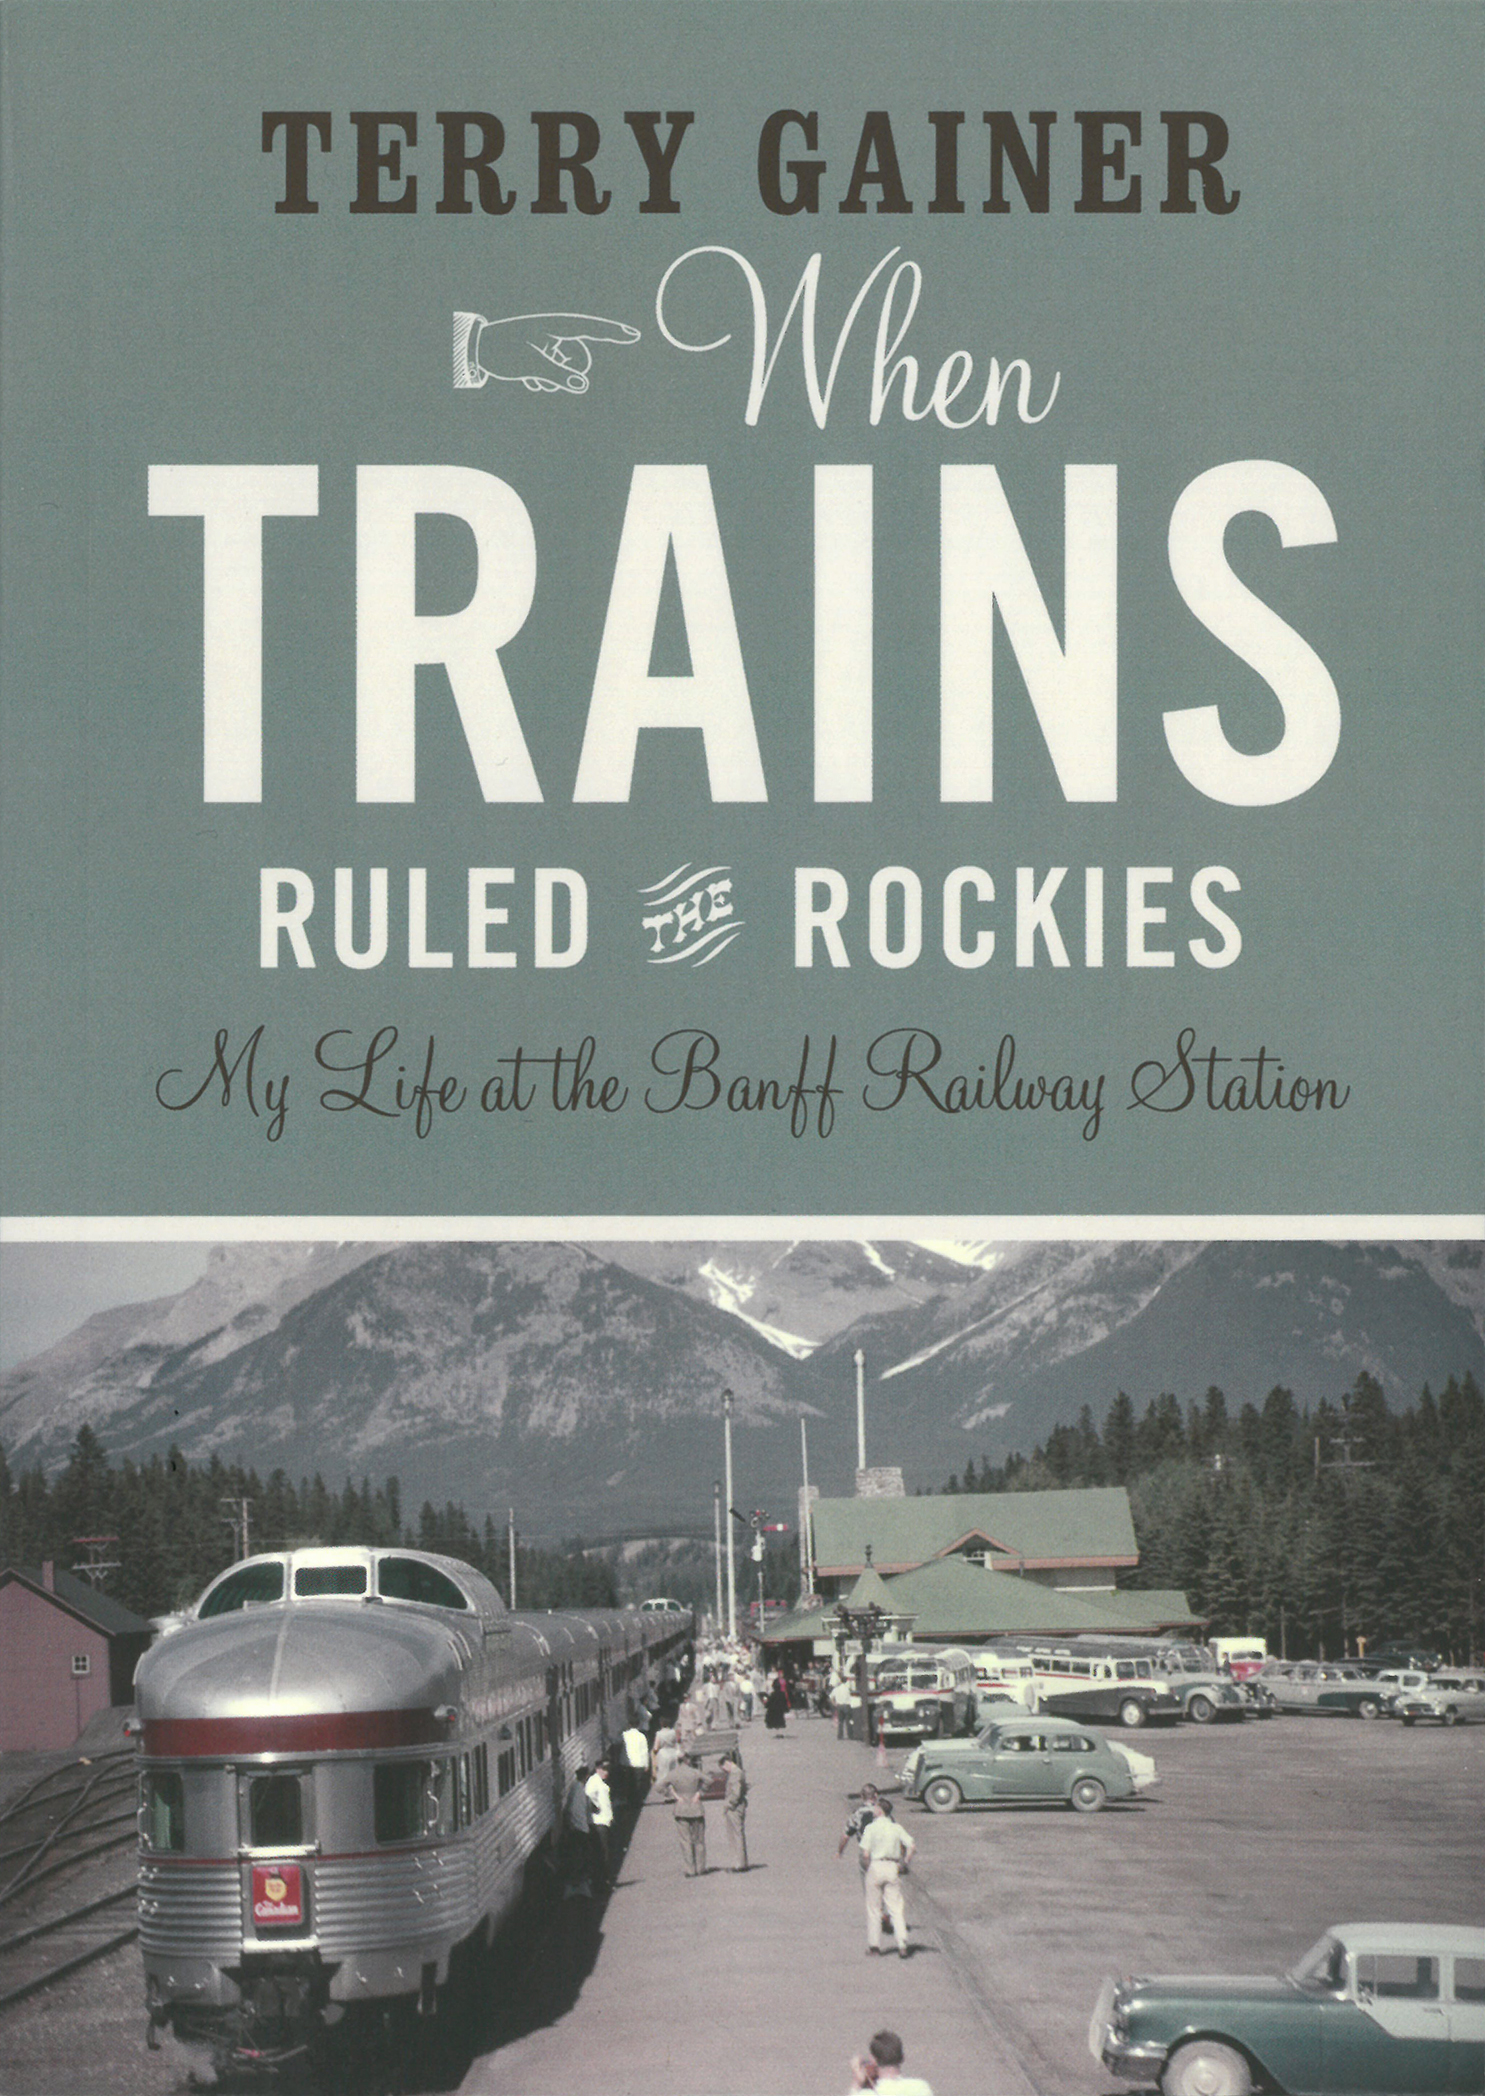 Cover of book - 'When Trains Ruled the Rockies: My Life at the Banff Railway Station'